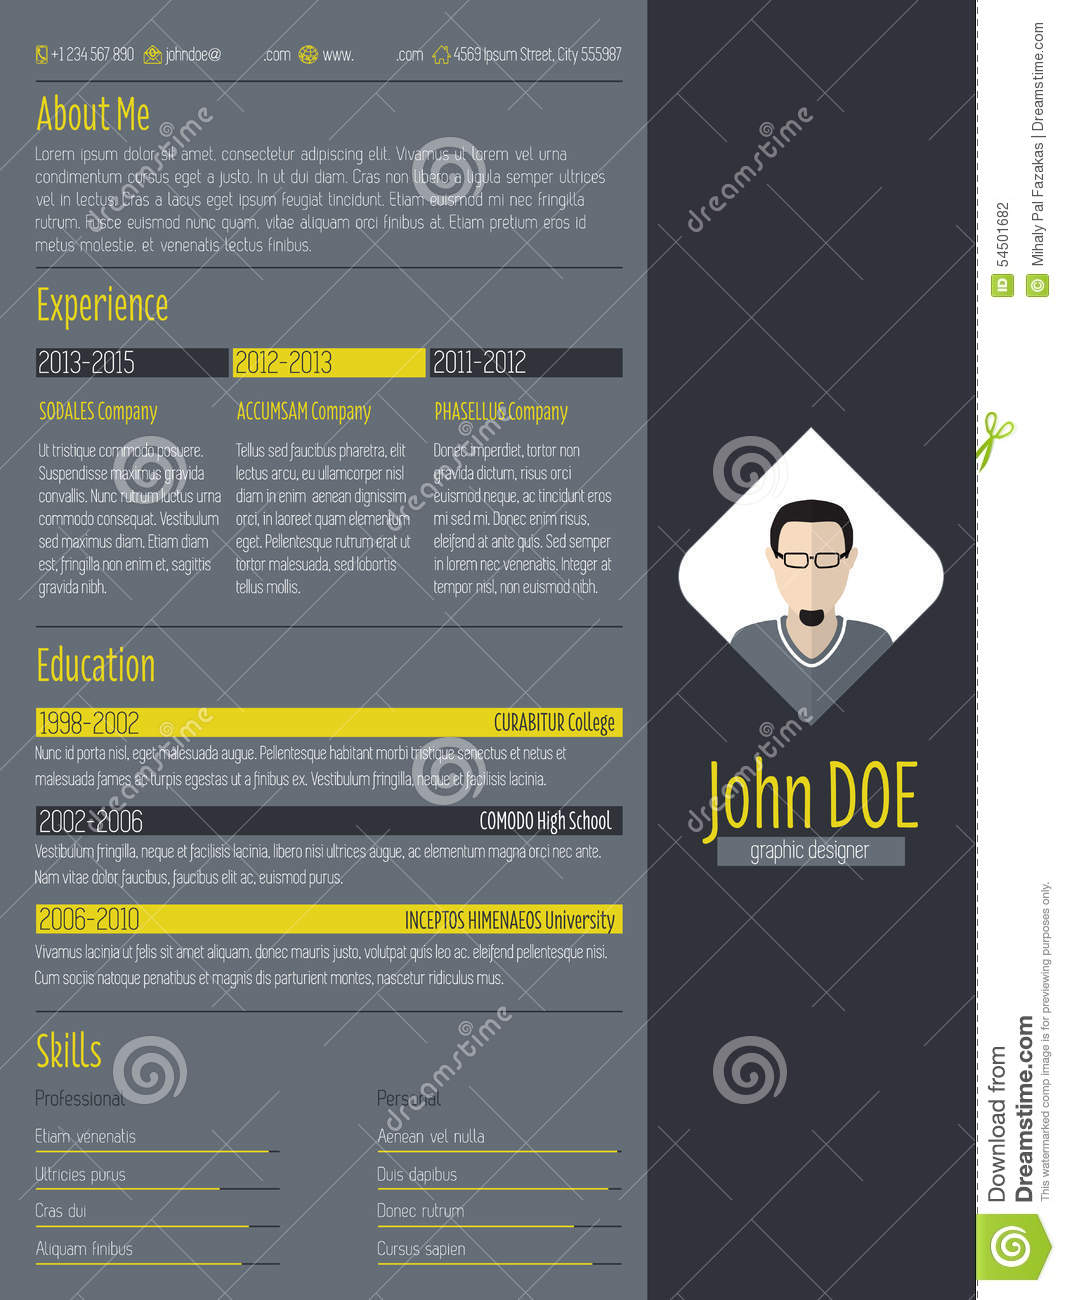 curriculum vitae template design sample customer service resume curriculum vitae template design curriculum vitae cv template the balance modern curriculum vitae resume dark